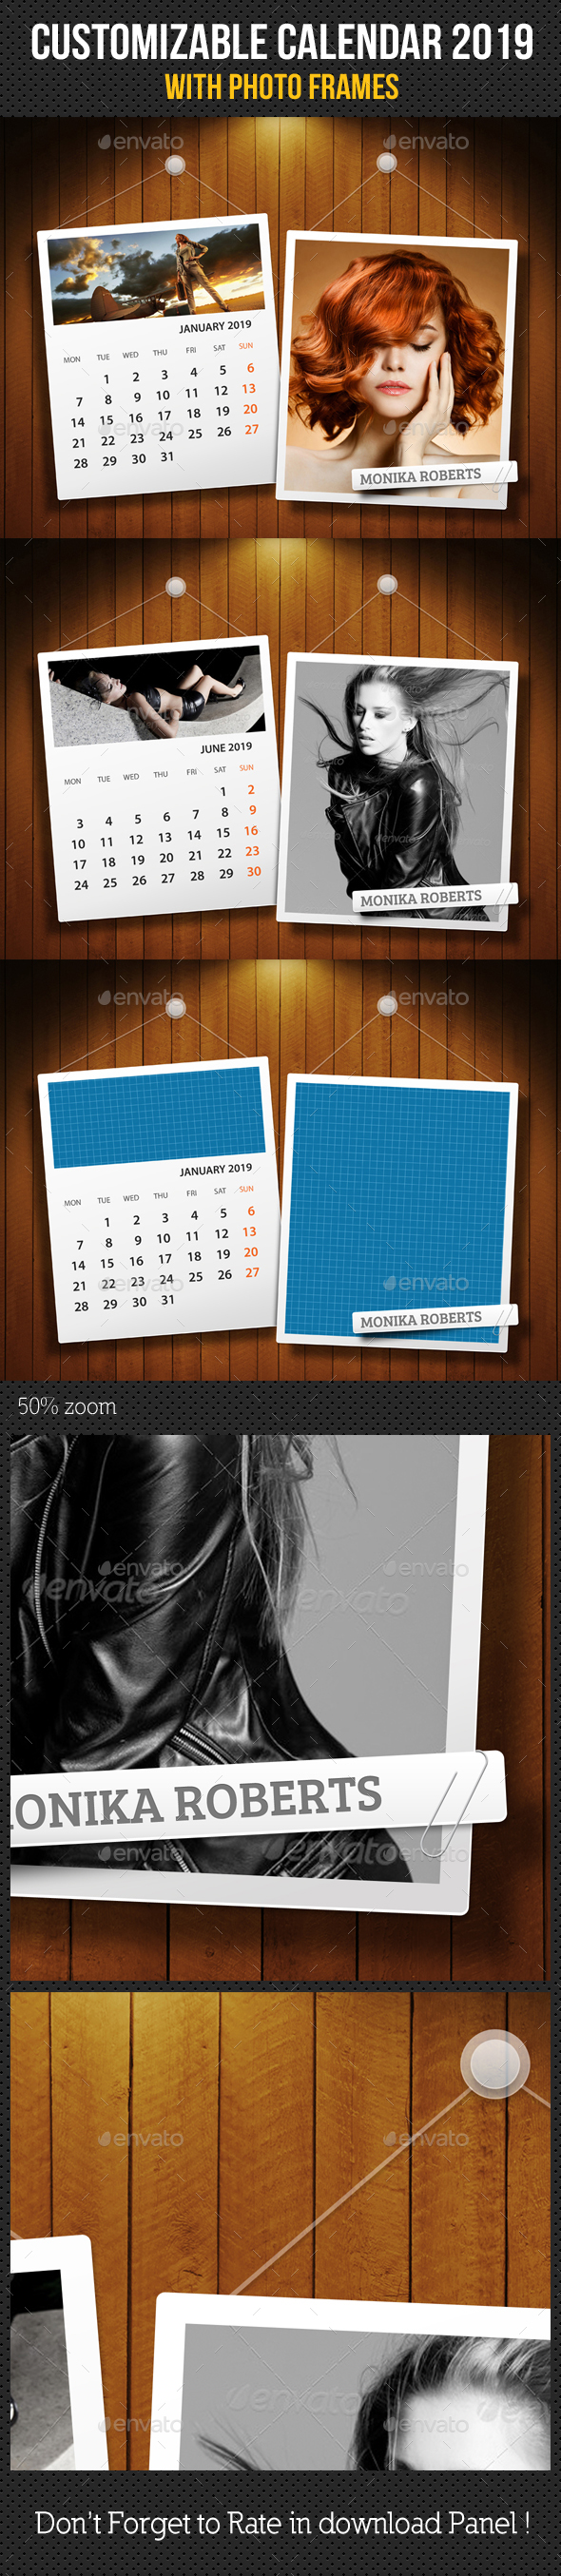 Customizable Calendar 2019 Photo Frame V07 - Miscellaneous Photo Templates